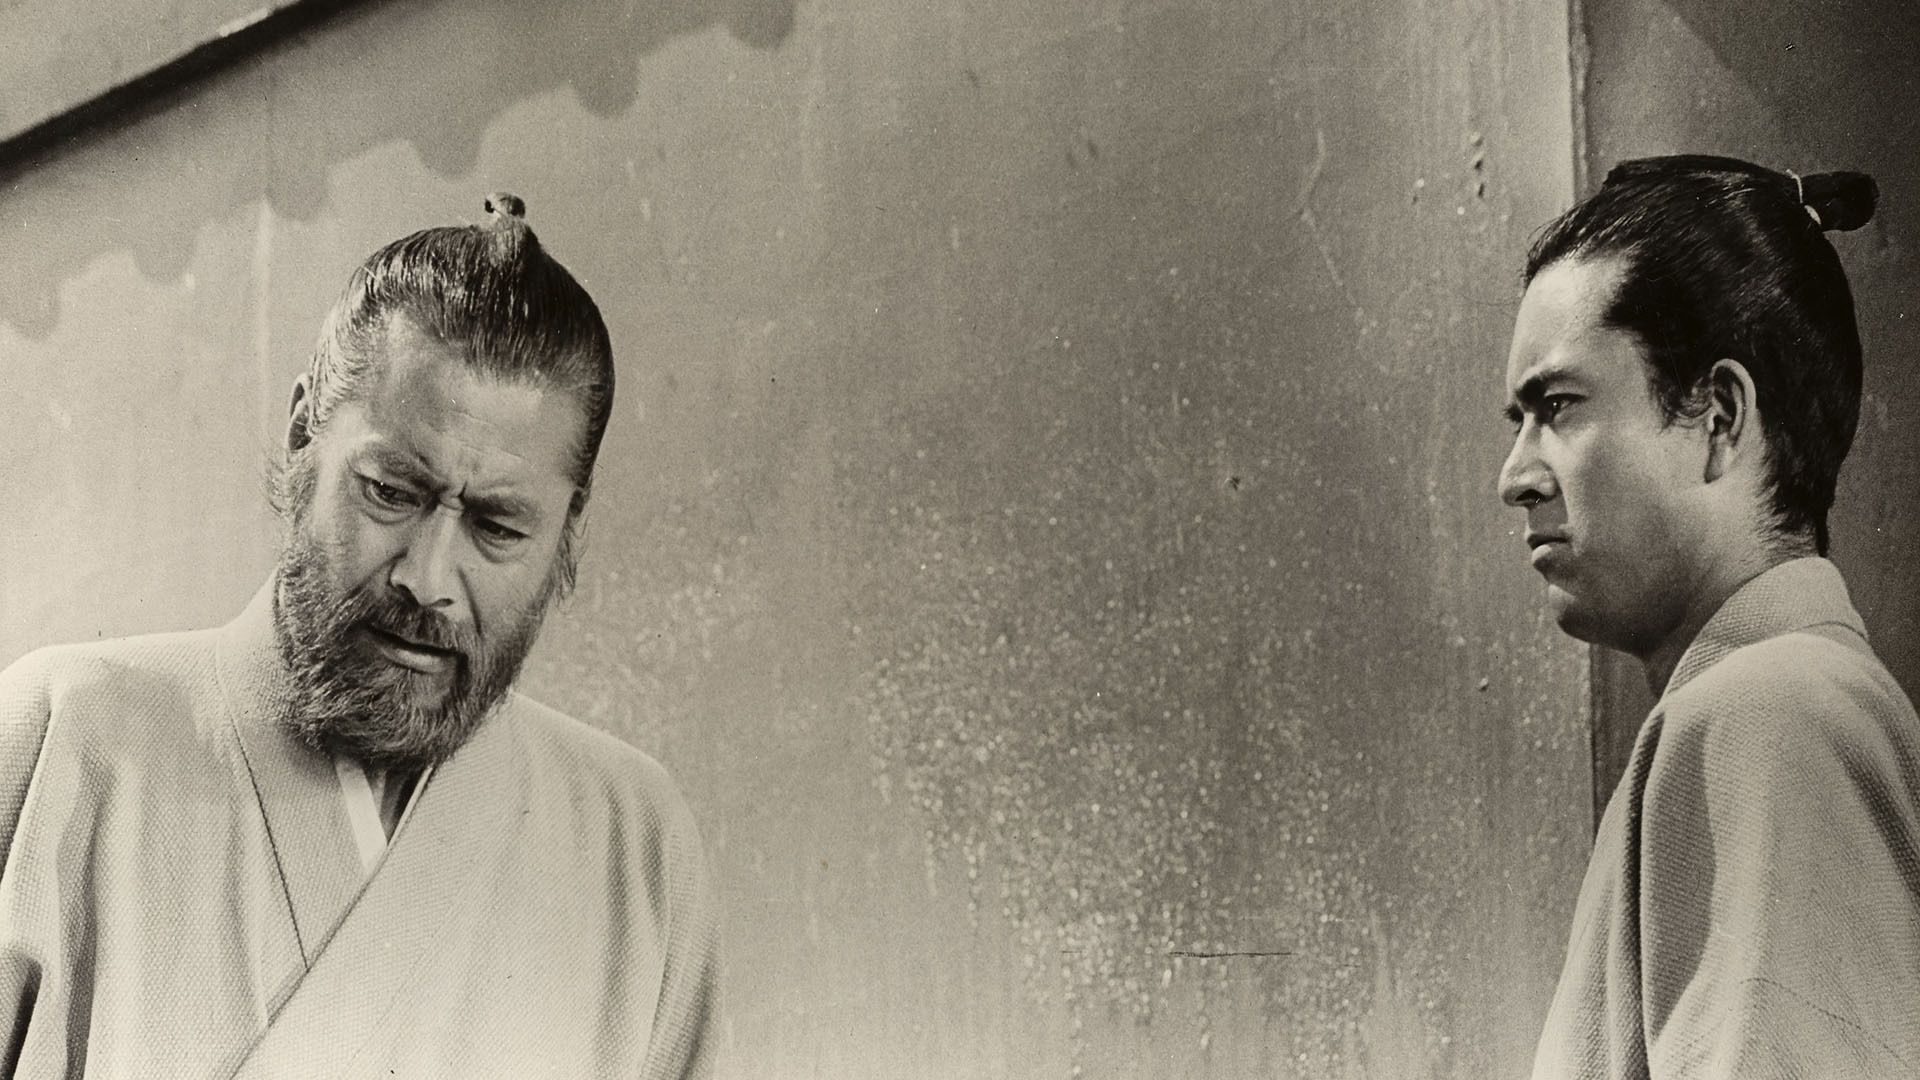 akira-kurosawa-toshiro-mifune-red-beard-desktop-1920x1080-hd-1920%C3%971080-wallpaper-wp3802265